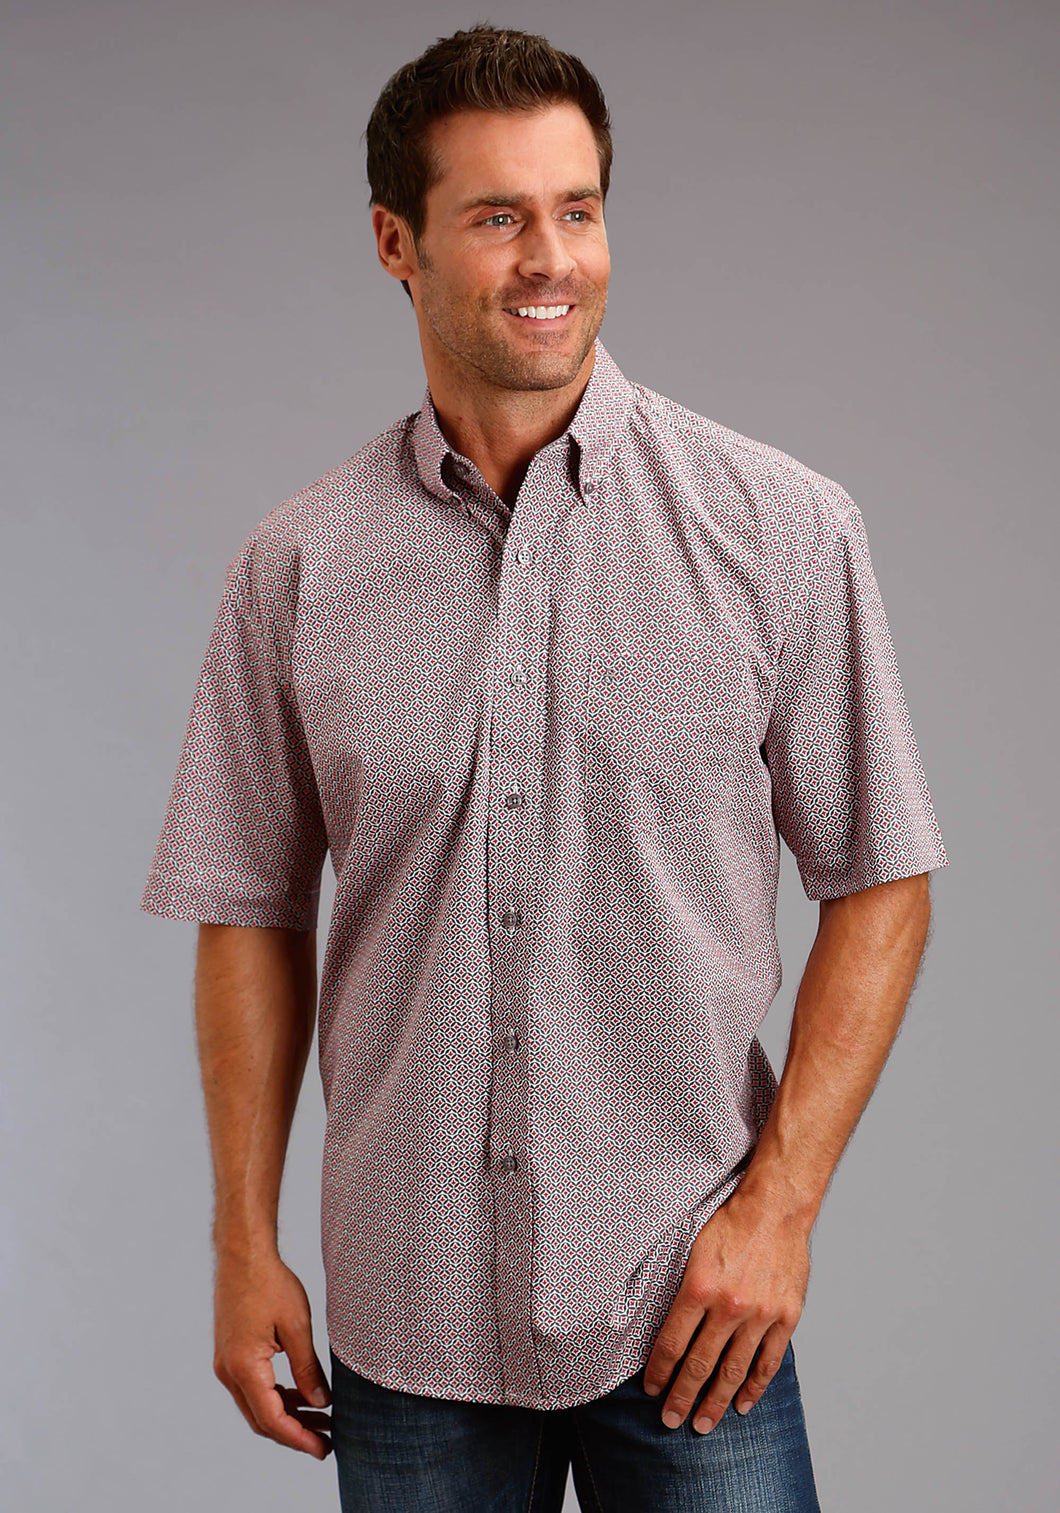 Stetson Men's Collection- Summer Iii Stetson Mens Short Sleeve Shirt 1658 Fluer Di Li